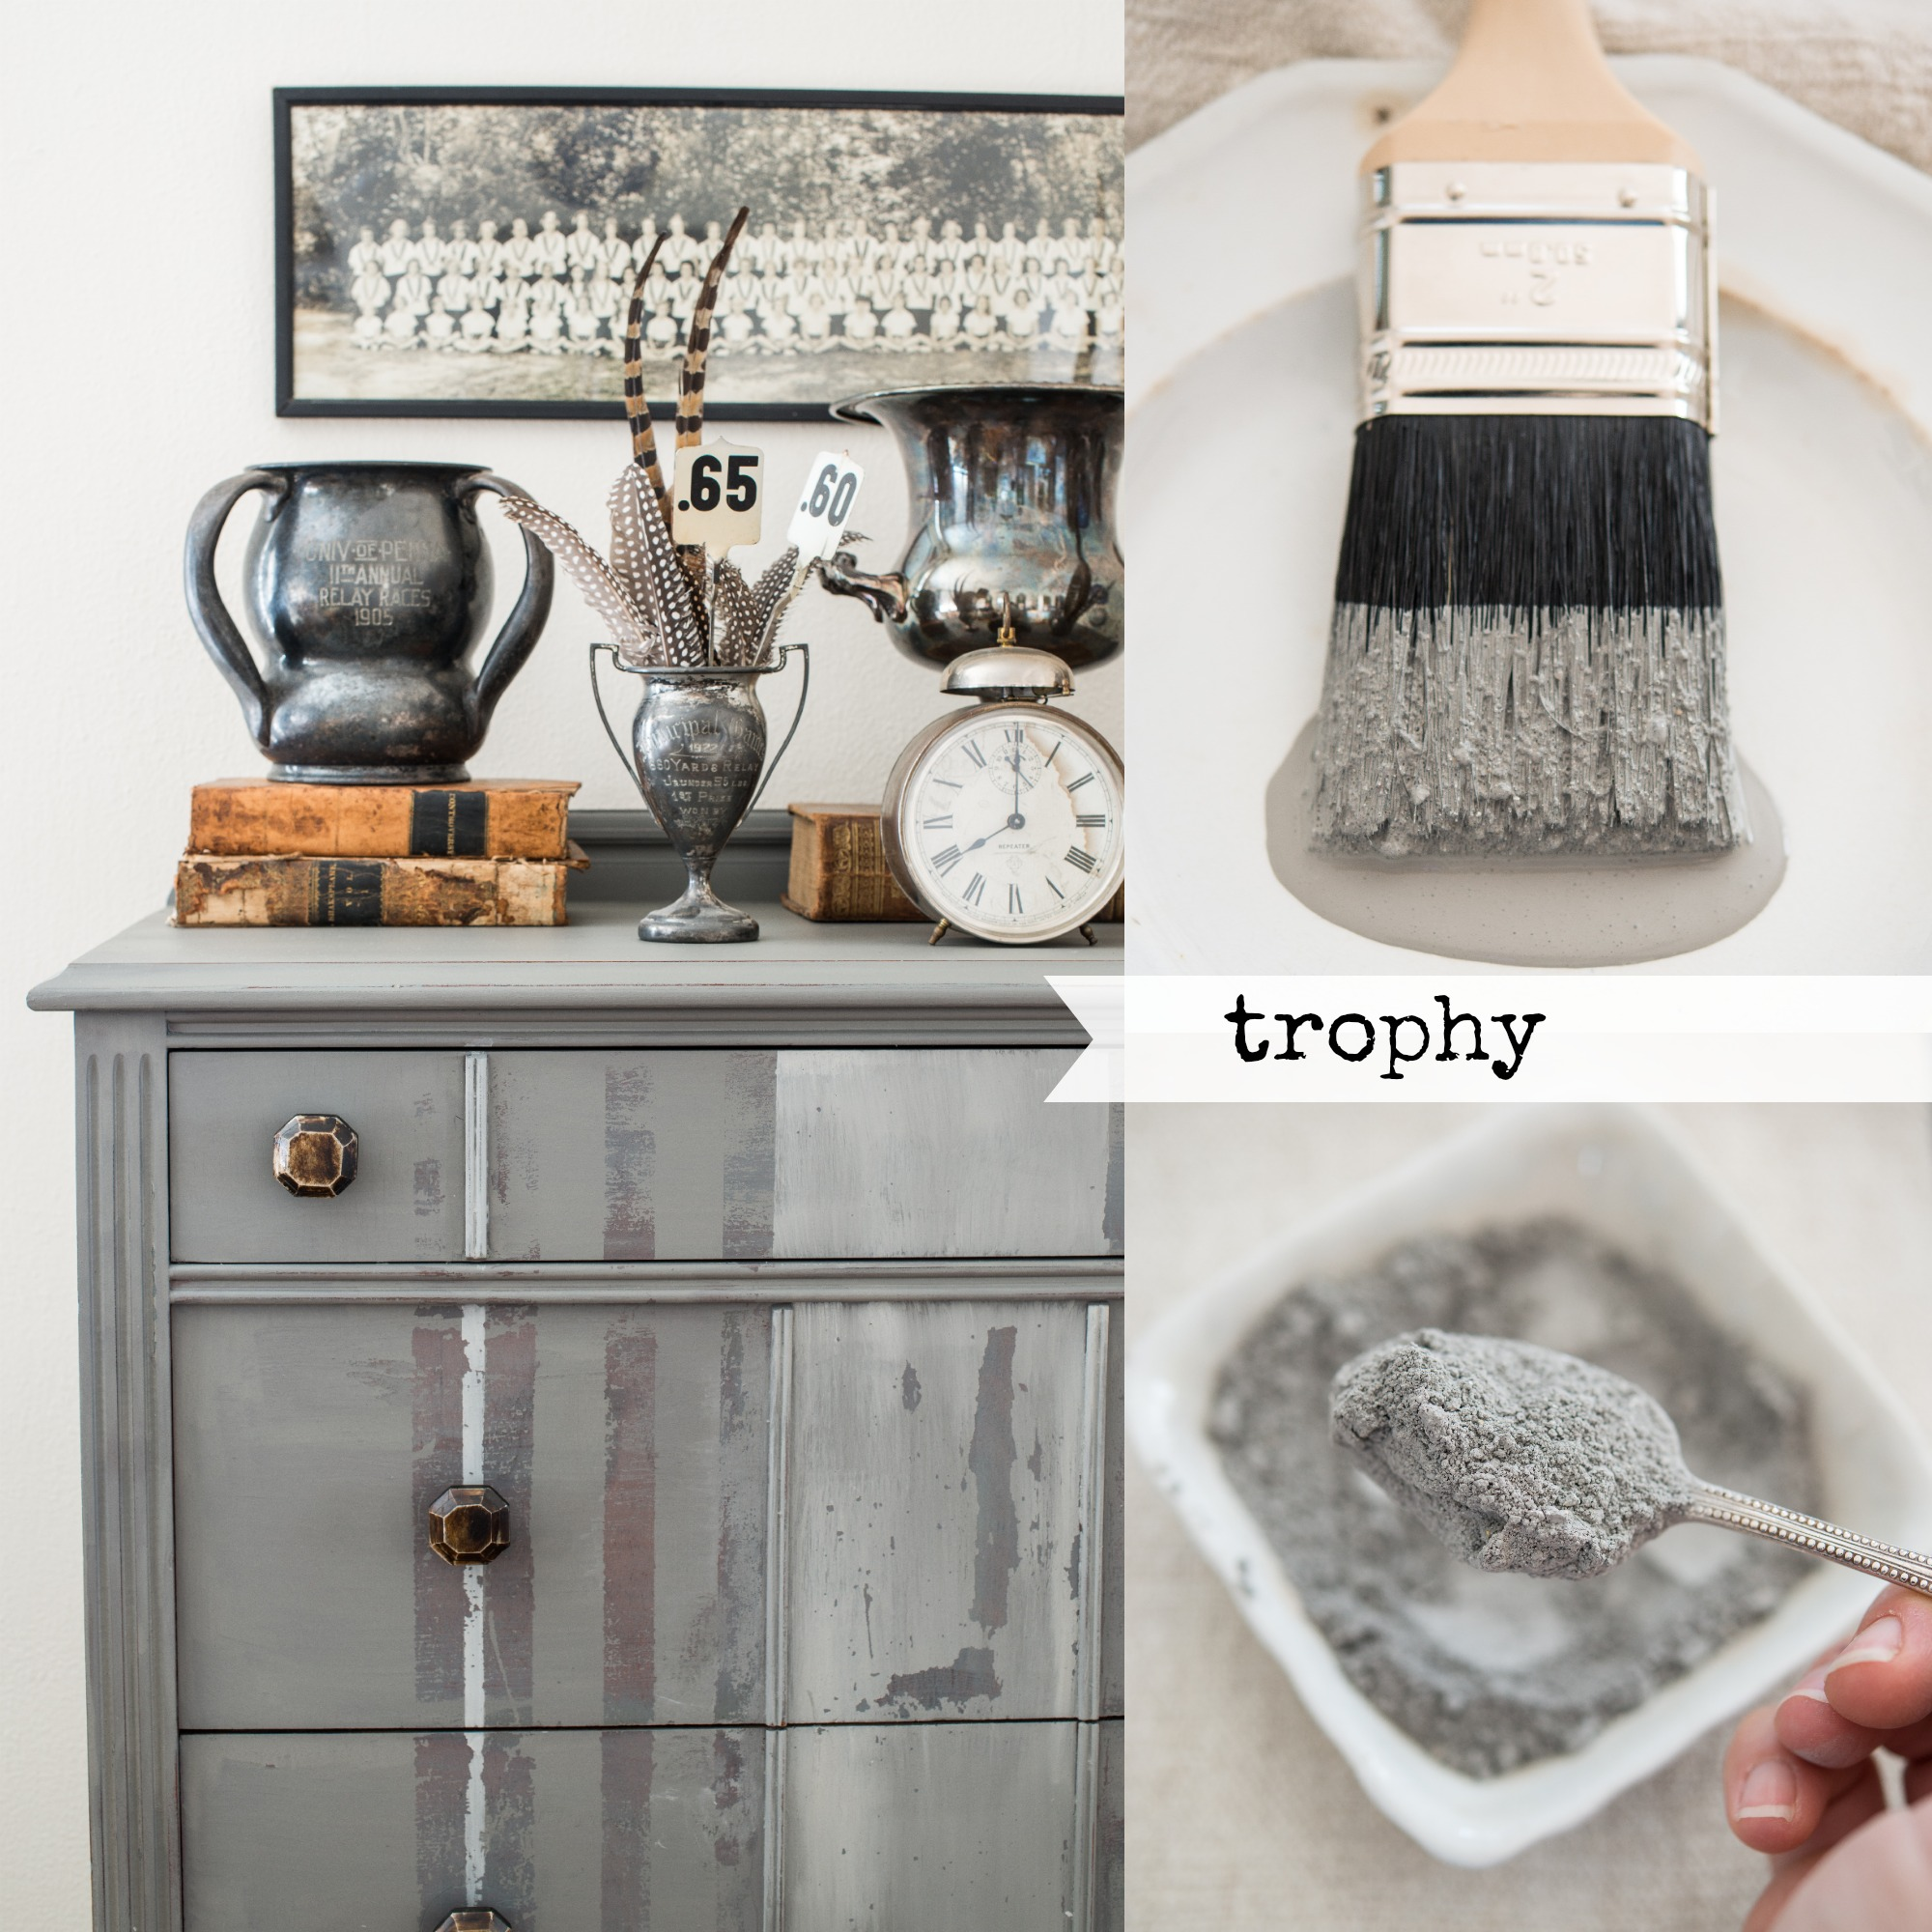 Miss Mustard Seed's Milk Paint Trophy for a DIY Headboard Barnboard finish.